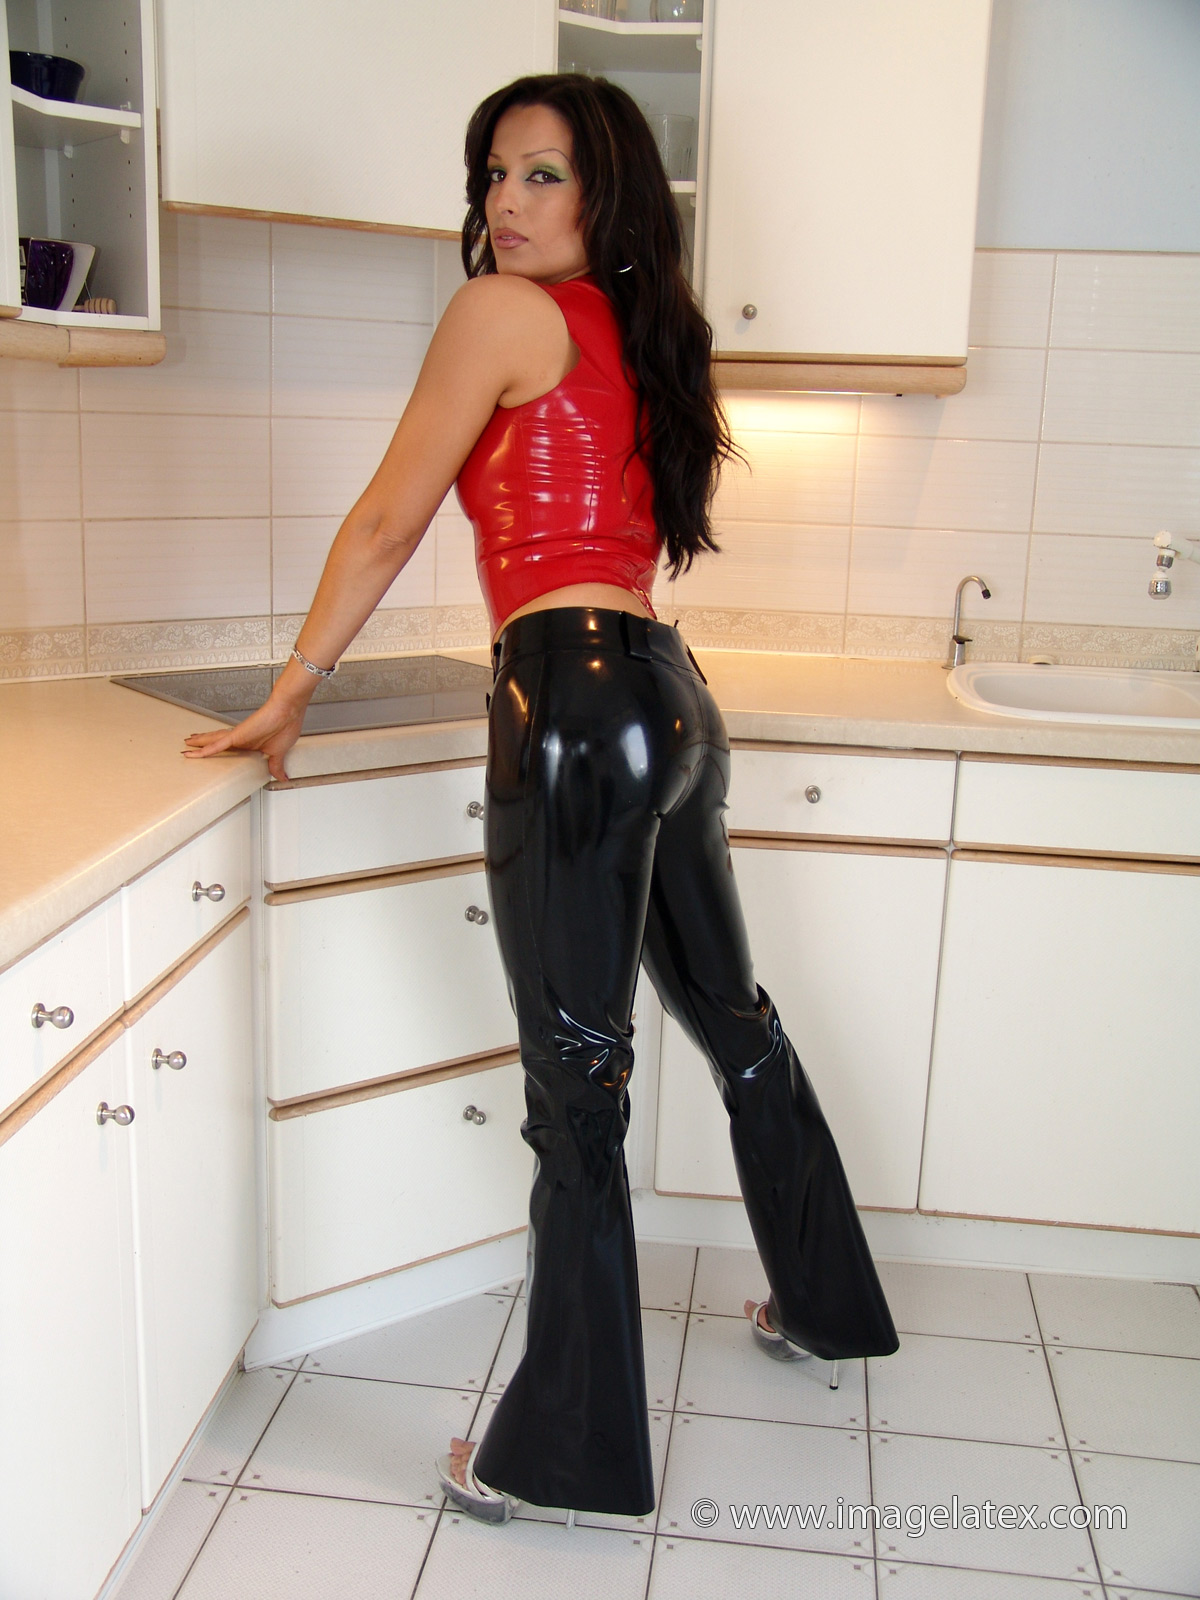 Fetish girls shiny